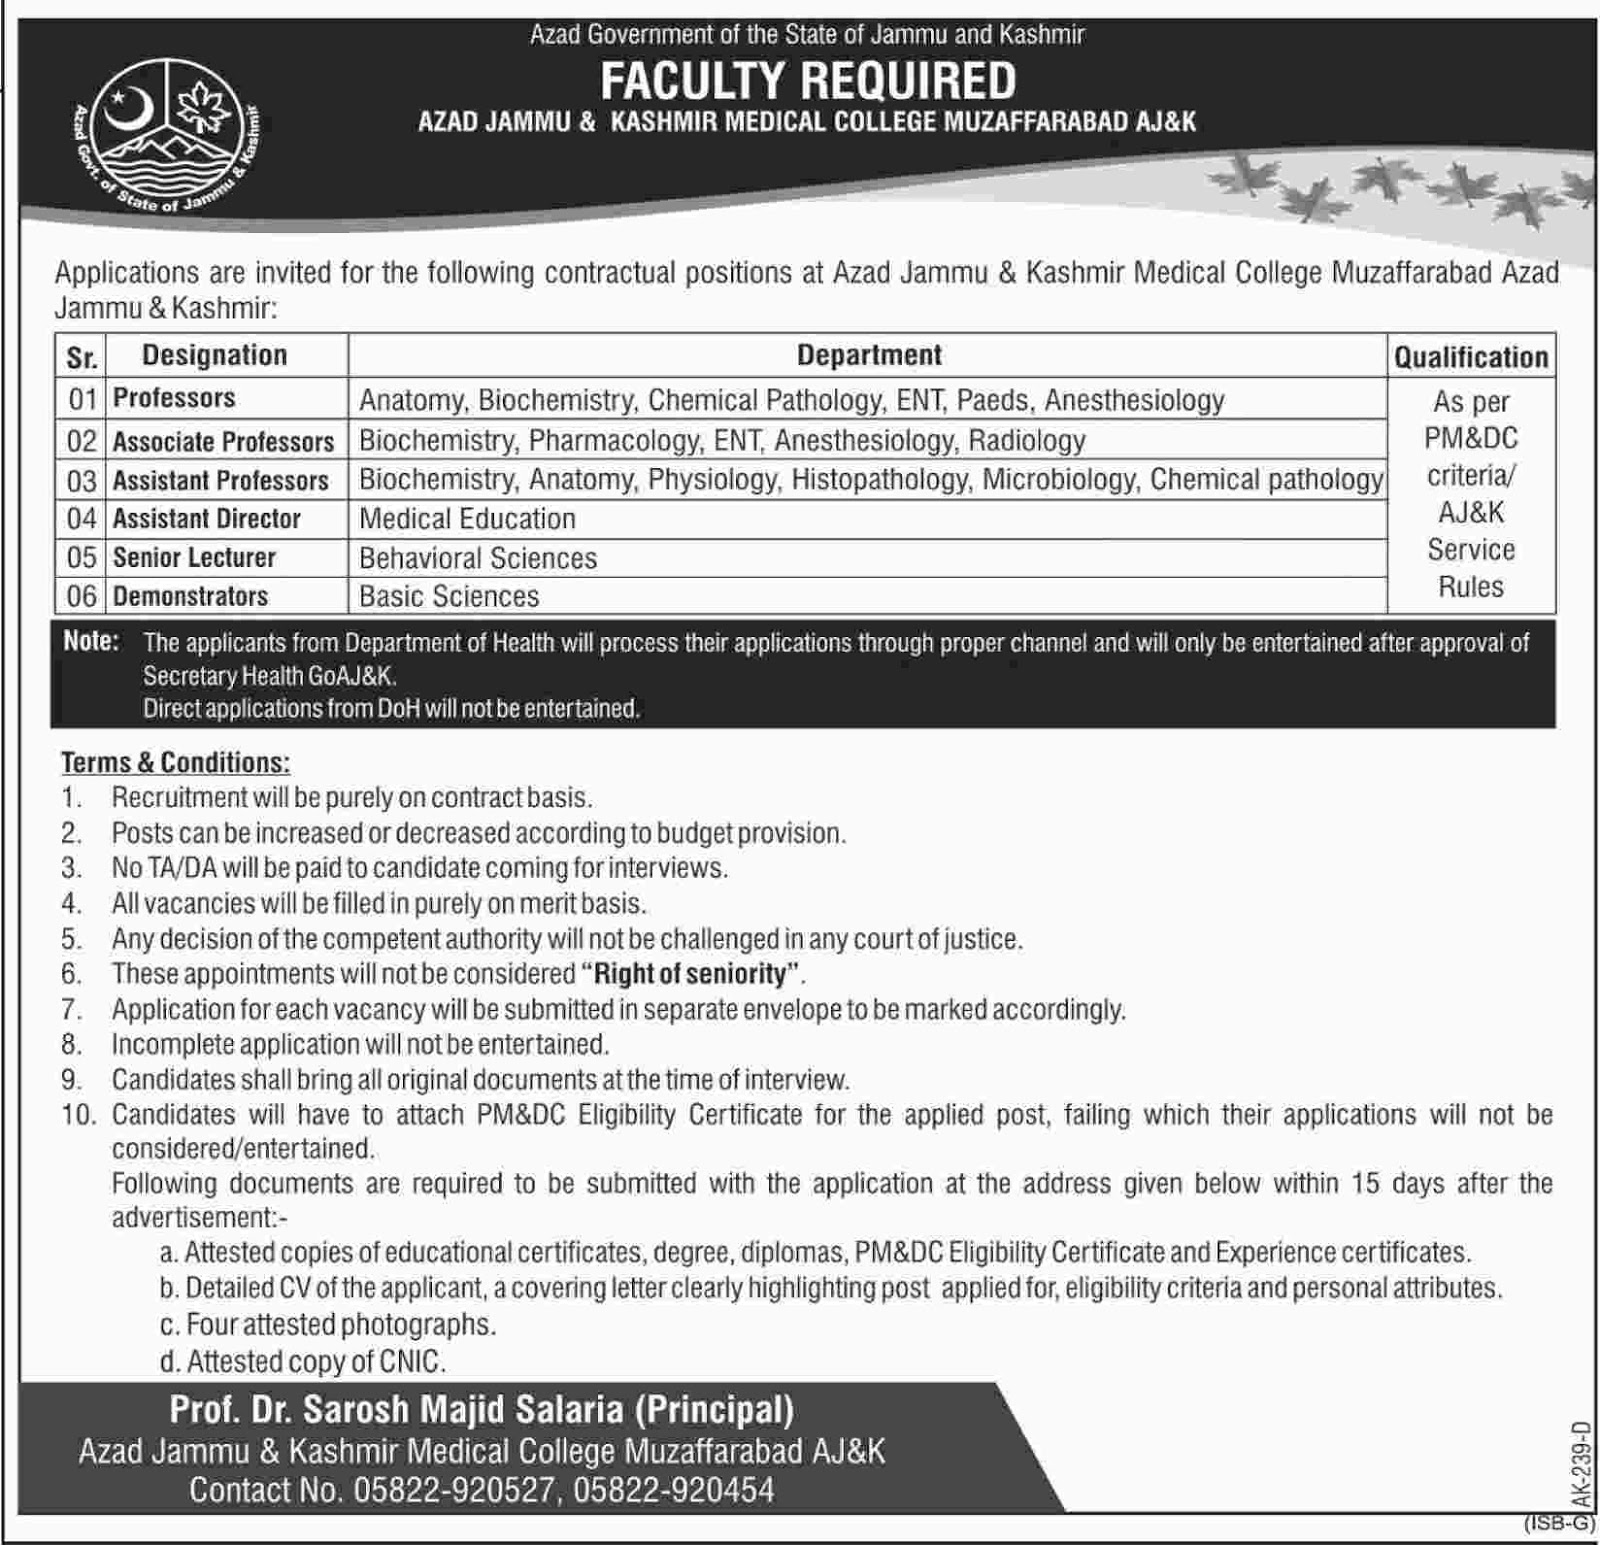 Azad Jammu And Kashmir Medical College Announced Jobs in Muzaffarabad